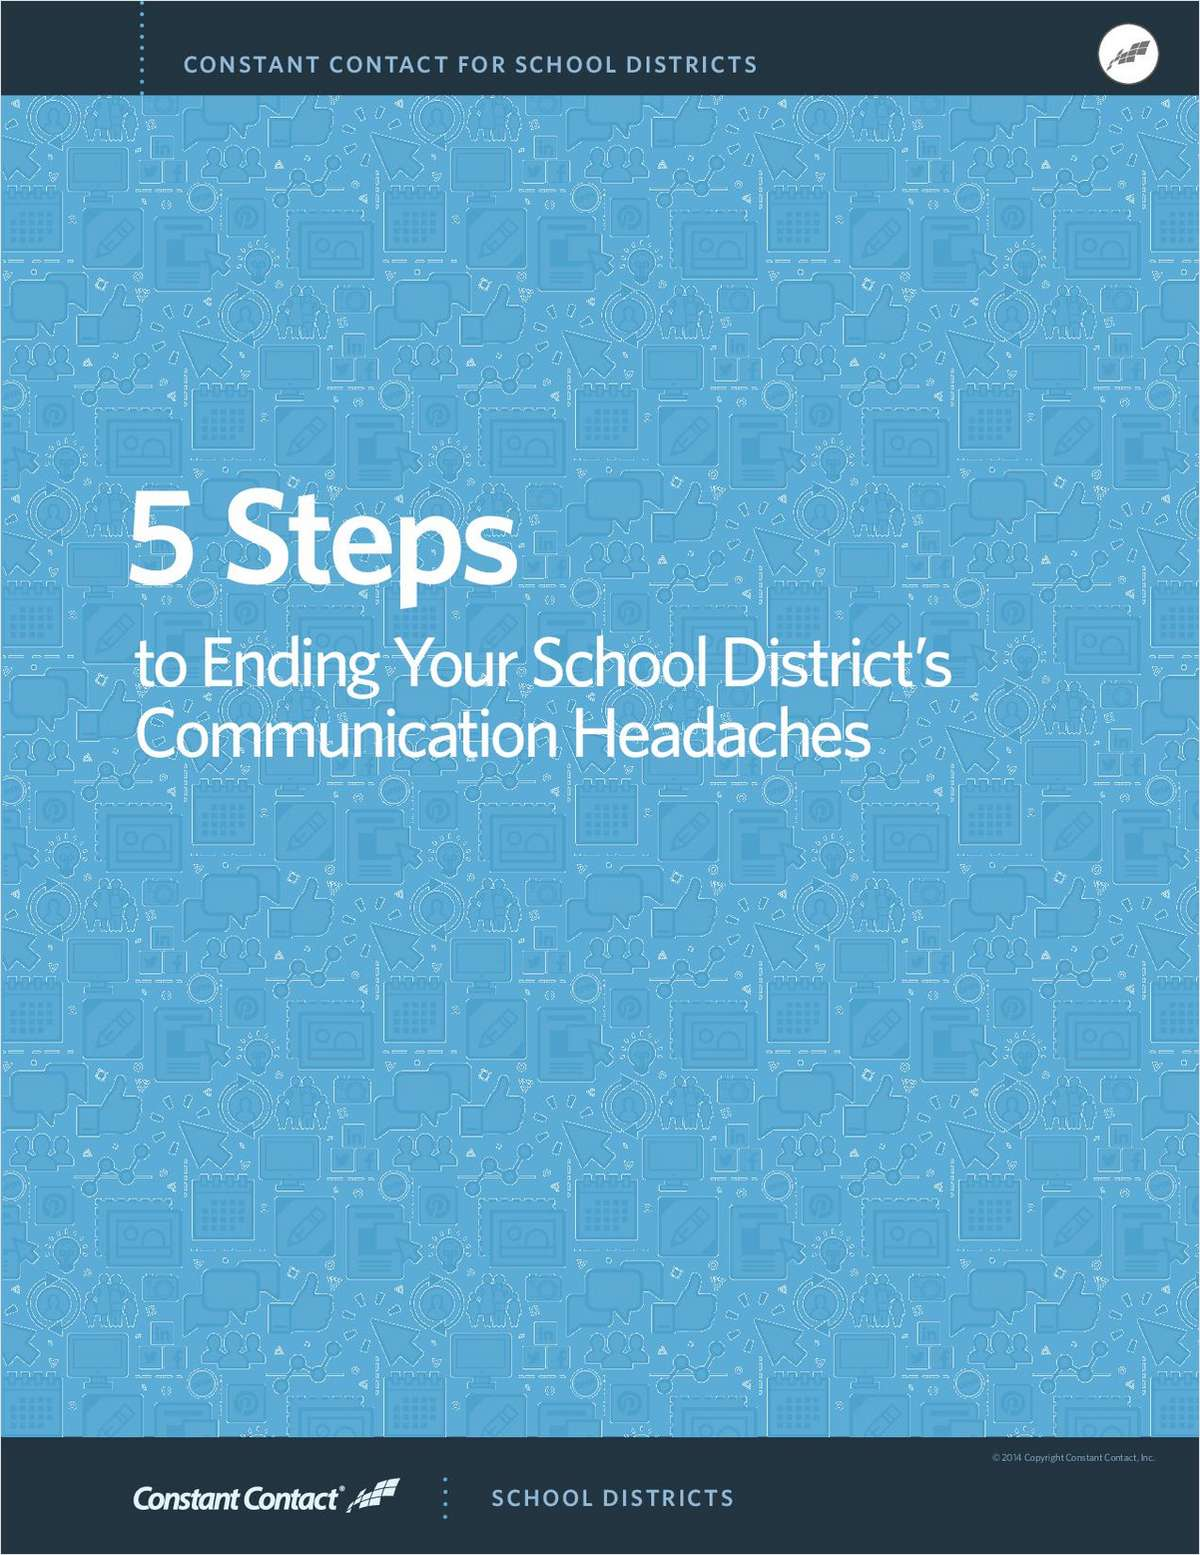 5 Steps to Improve Your K12 School District's Communication Headaches